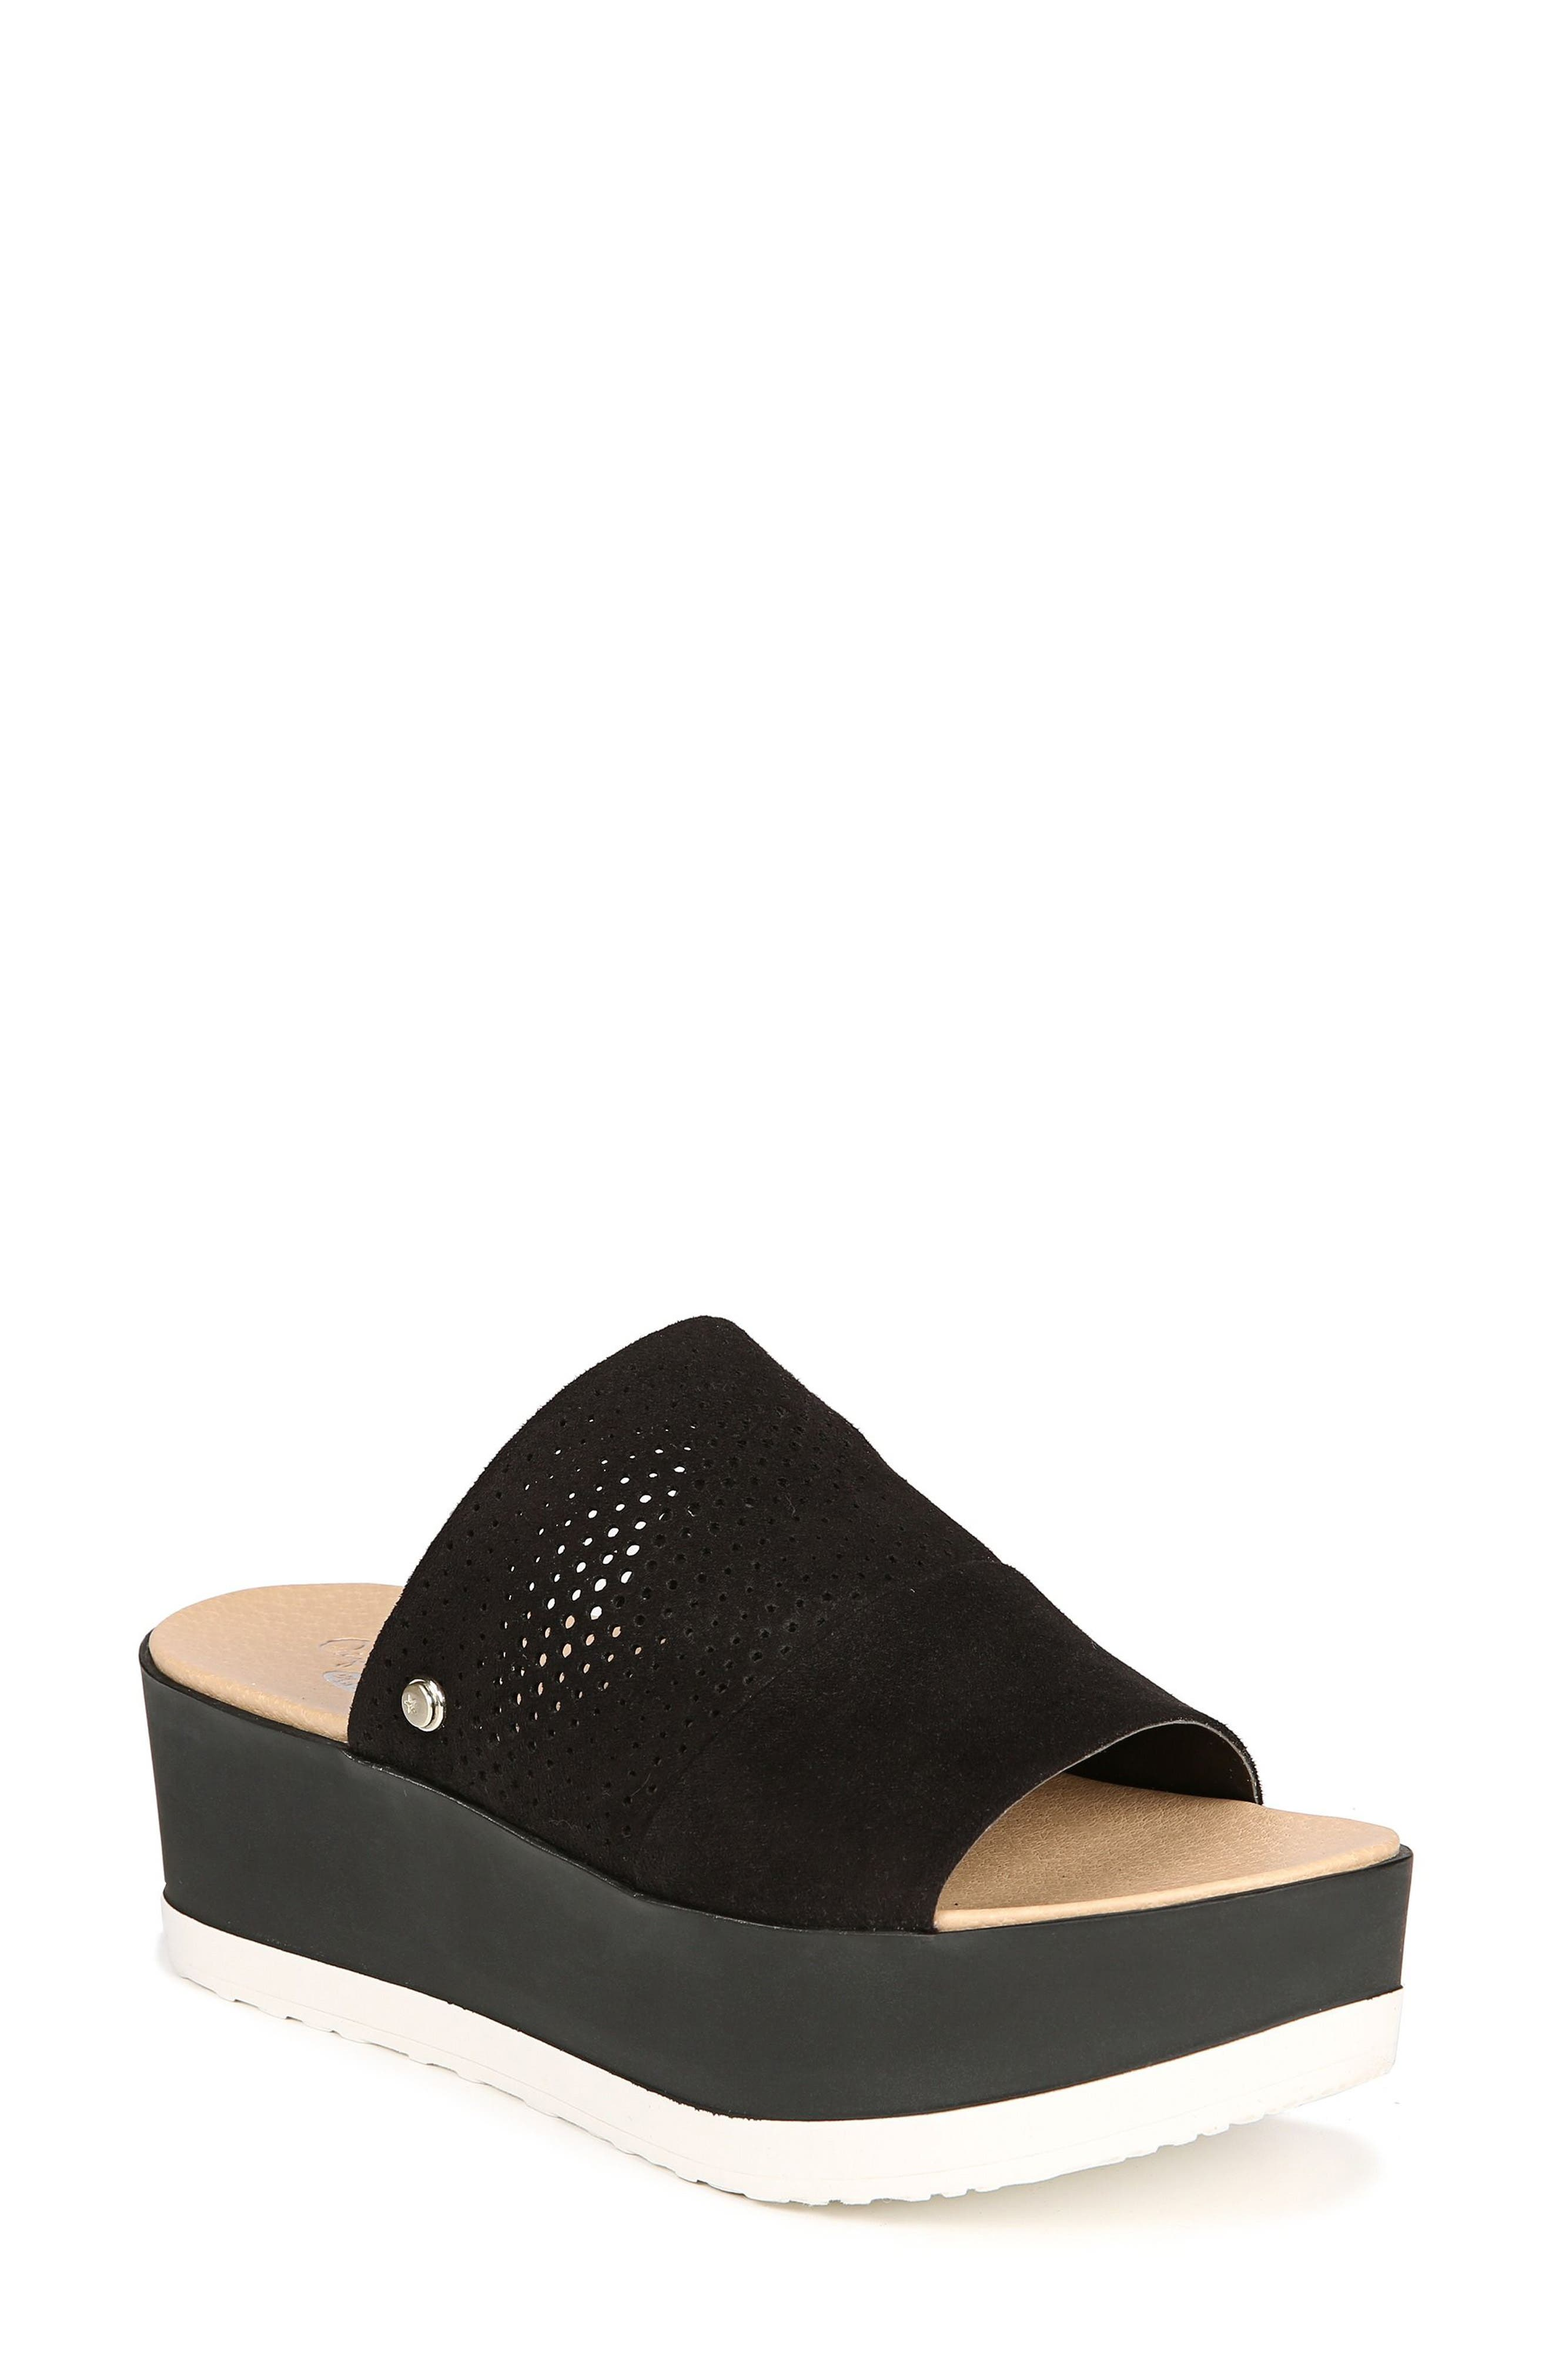 Collins Platform Sandal,                         Main,                         color, BLACK FABRIC